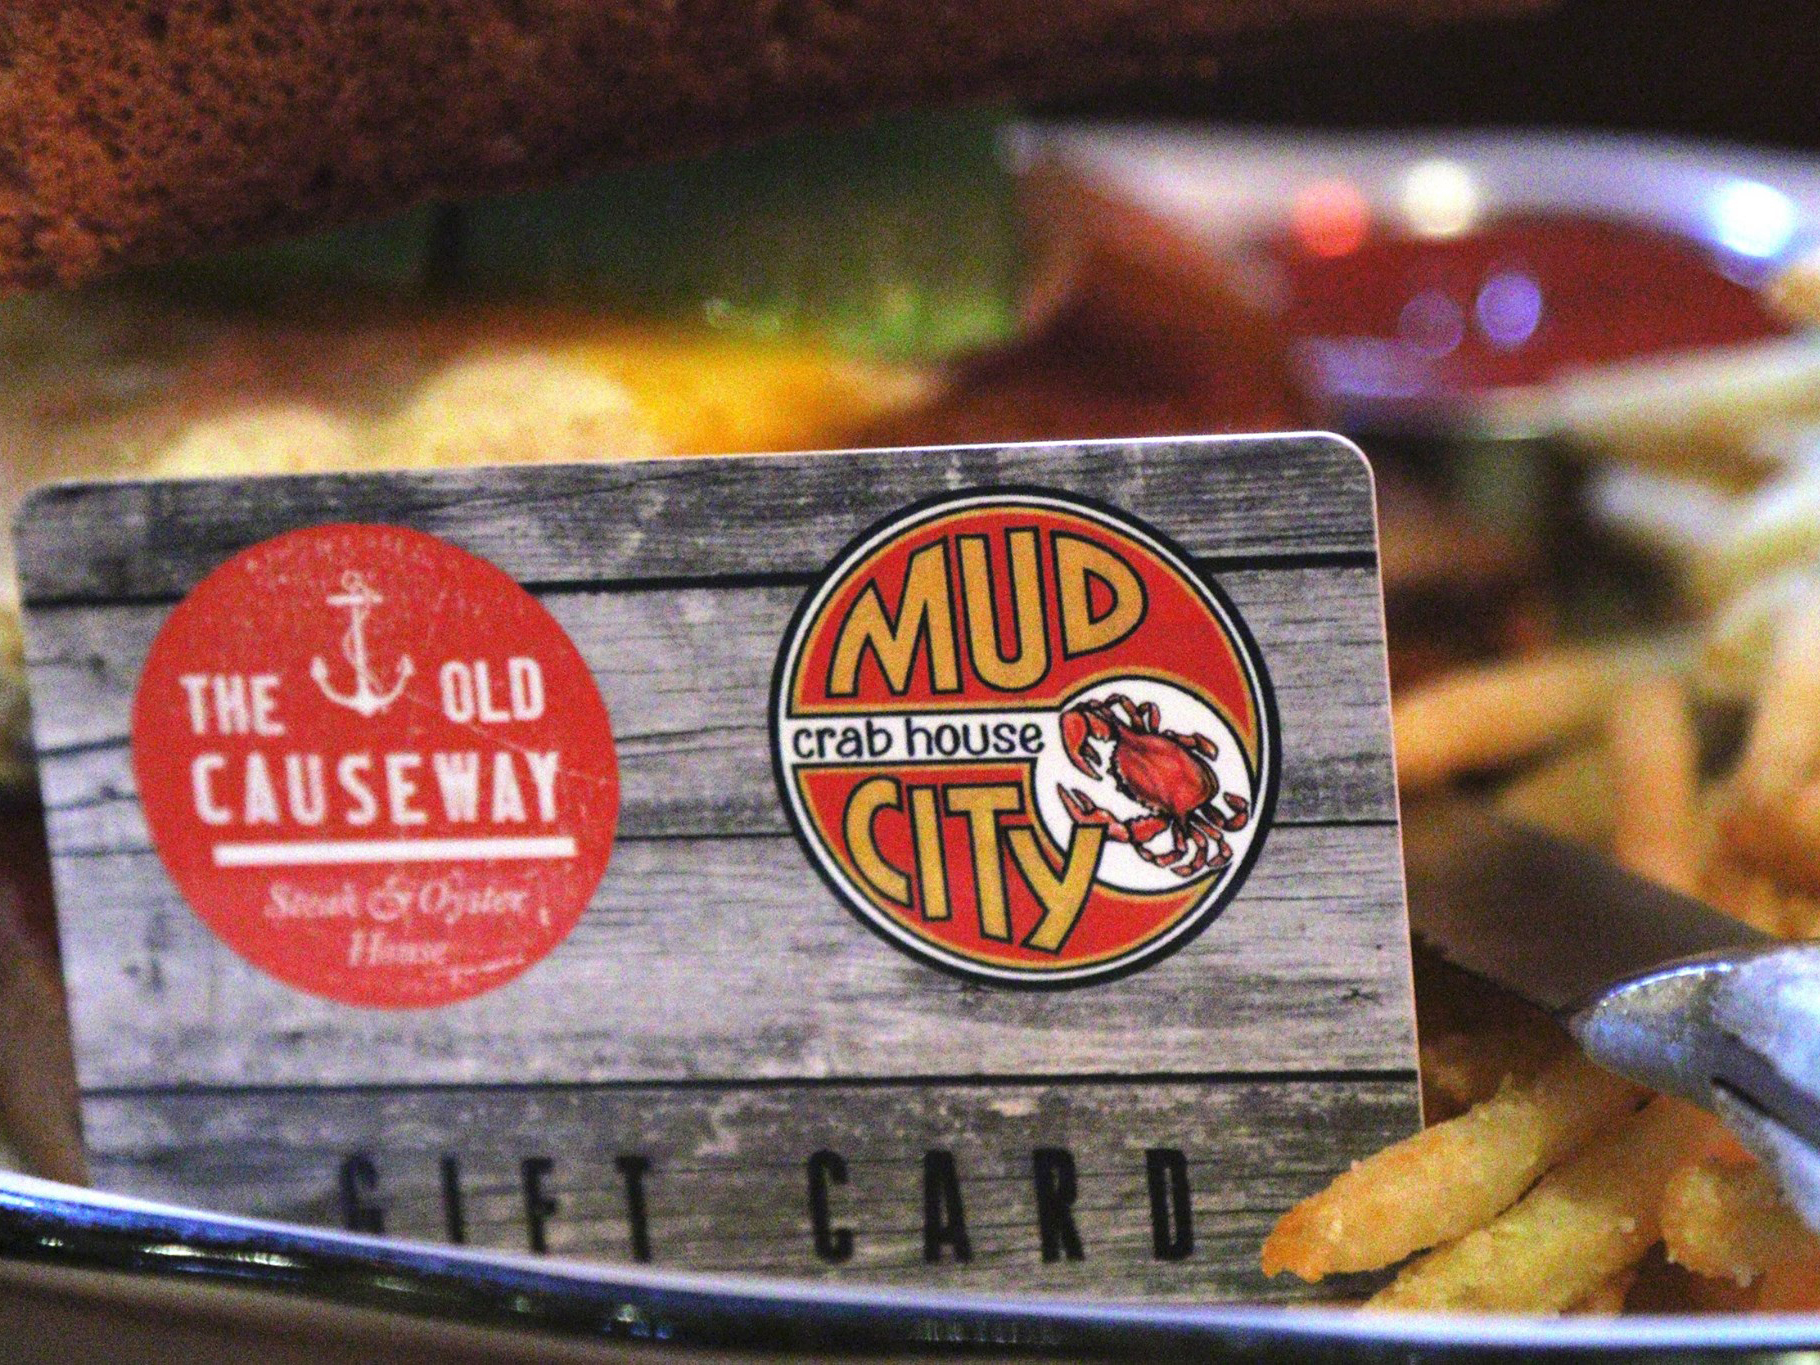 The Mud City/Old Causeway gift card is a sure shot gift.